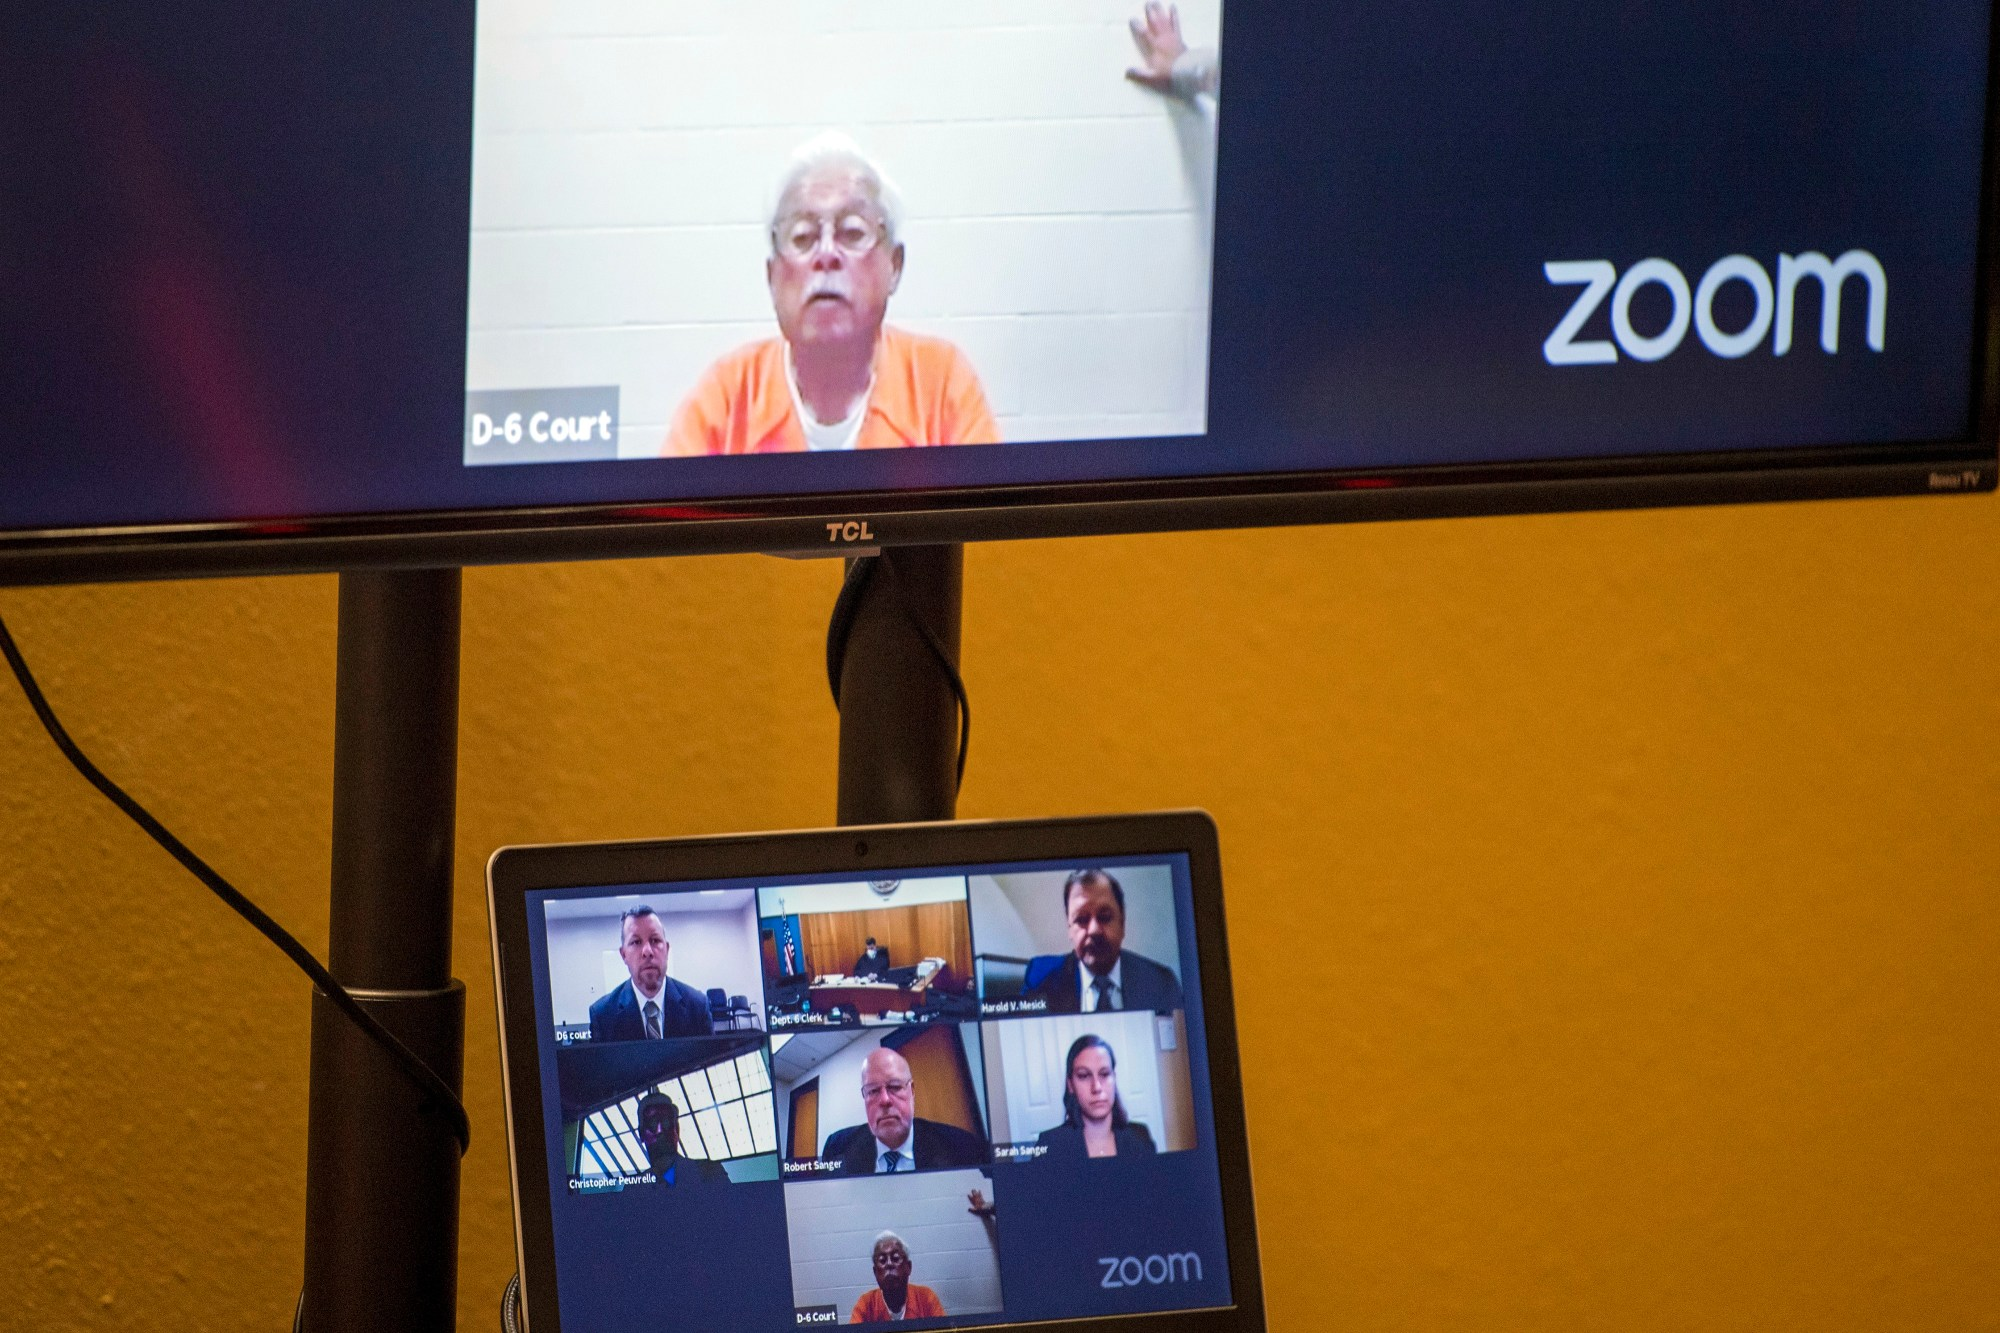 Defendant Ruben Flores appears via video conference during his arraignment, Thursday, April 15, 2021, in San Luis Obispo Superior Court in San Luis Obispo. (AP Photo/Nic Coury)